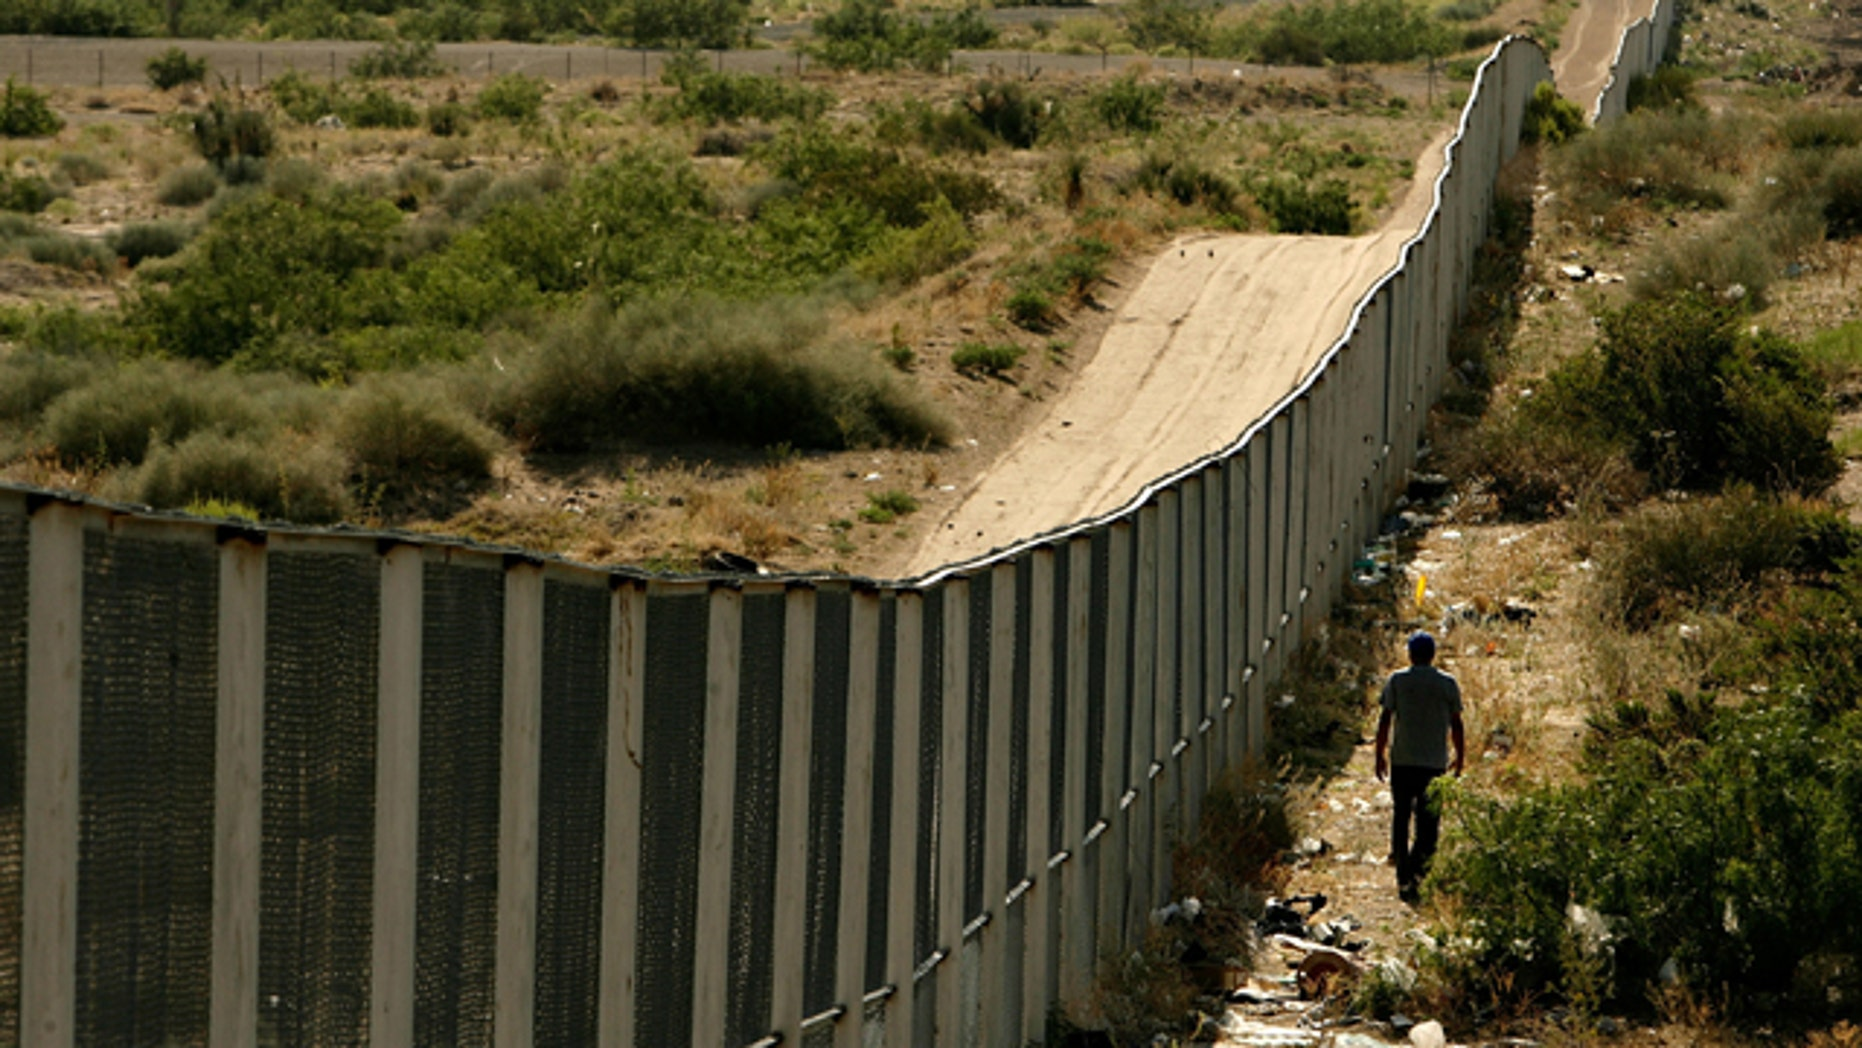 CIUDAD JUAREZ, CHIHUAHUA - JUNE 29:  A man walks along the border fence between the U.S. and Mexico on June 29, 2007 in the Anapra area of Ciudad Juarez, Mexico. This area is a popular crossing spot for immigrants to ilegally cross into the United States because houses are close to the border on the south side and the highway is close to the north side.  (Photo by Chip Somodevilla/Getty Images)